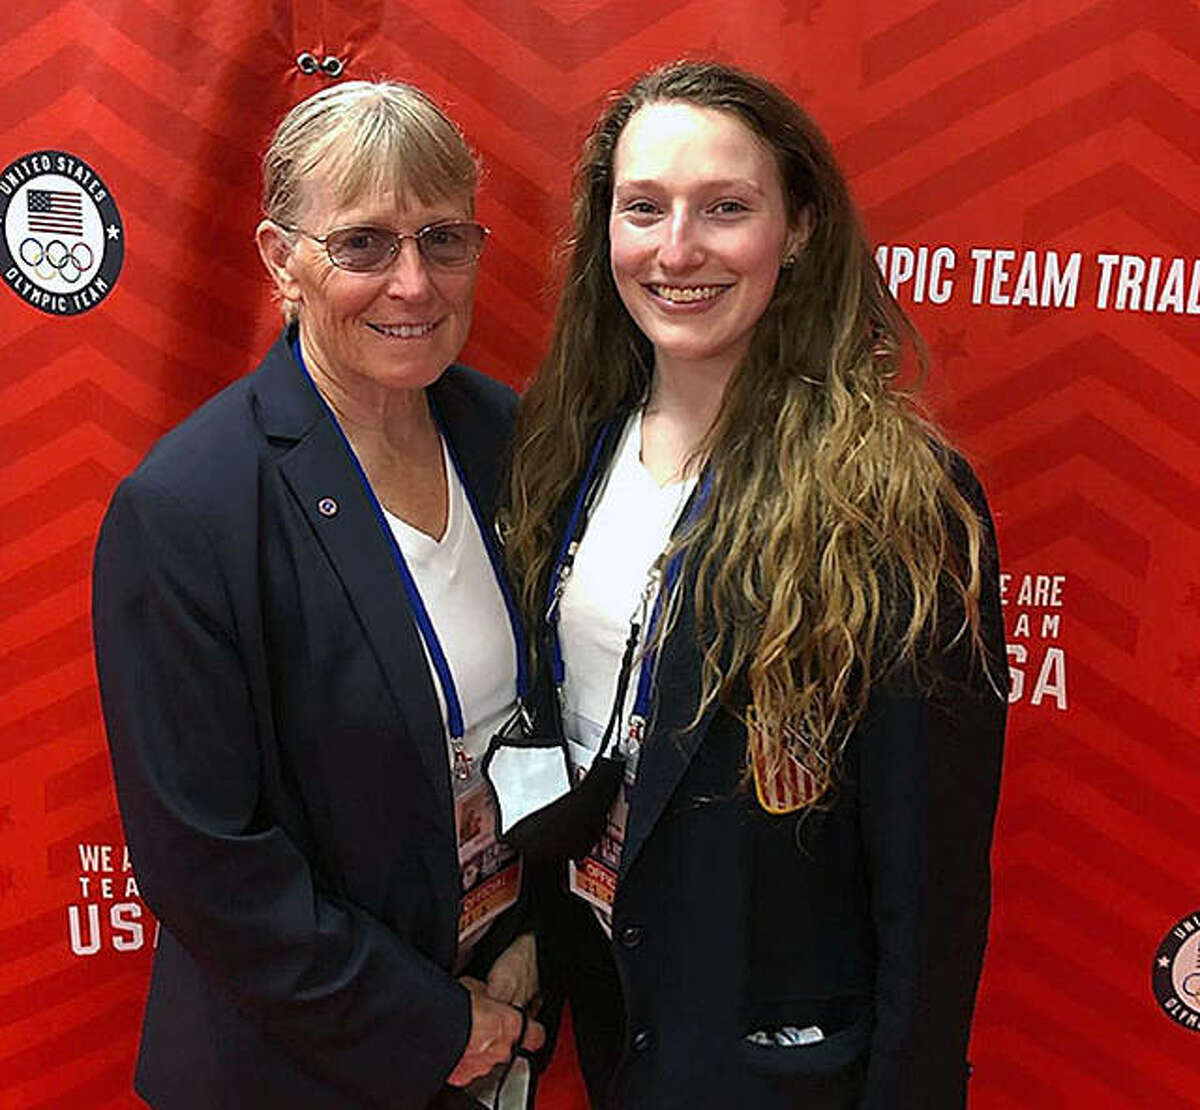 Alton's Judy Johnson-Durr and her daughter, Posy Durr, right, were auxiliary judges for balance beam events during the recent women's portion of the US Gymnastics Olympics Team trials in St. Louis.